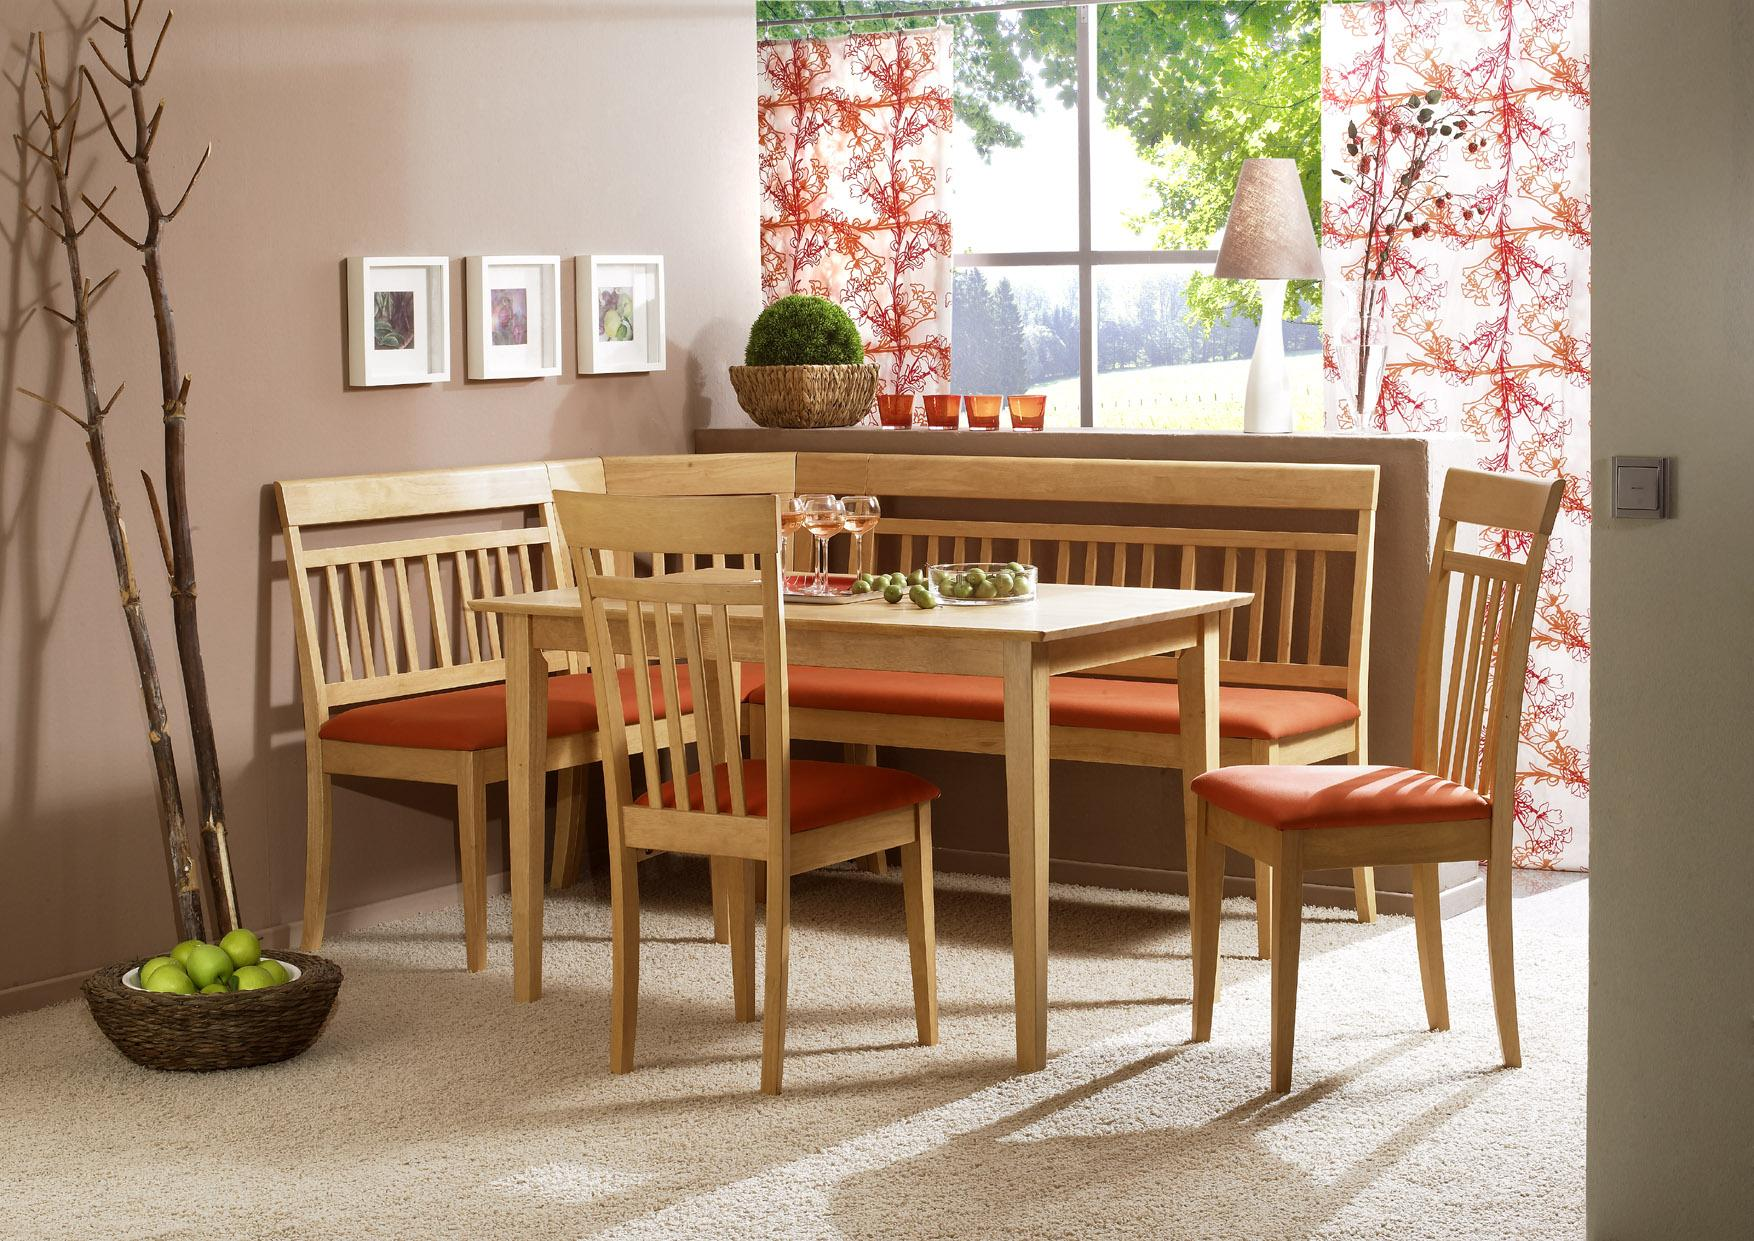 Kitchen table and bench set photo - 2